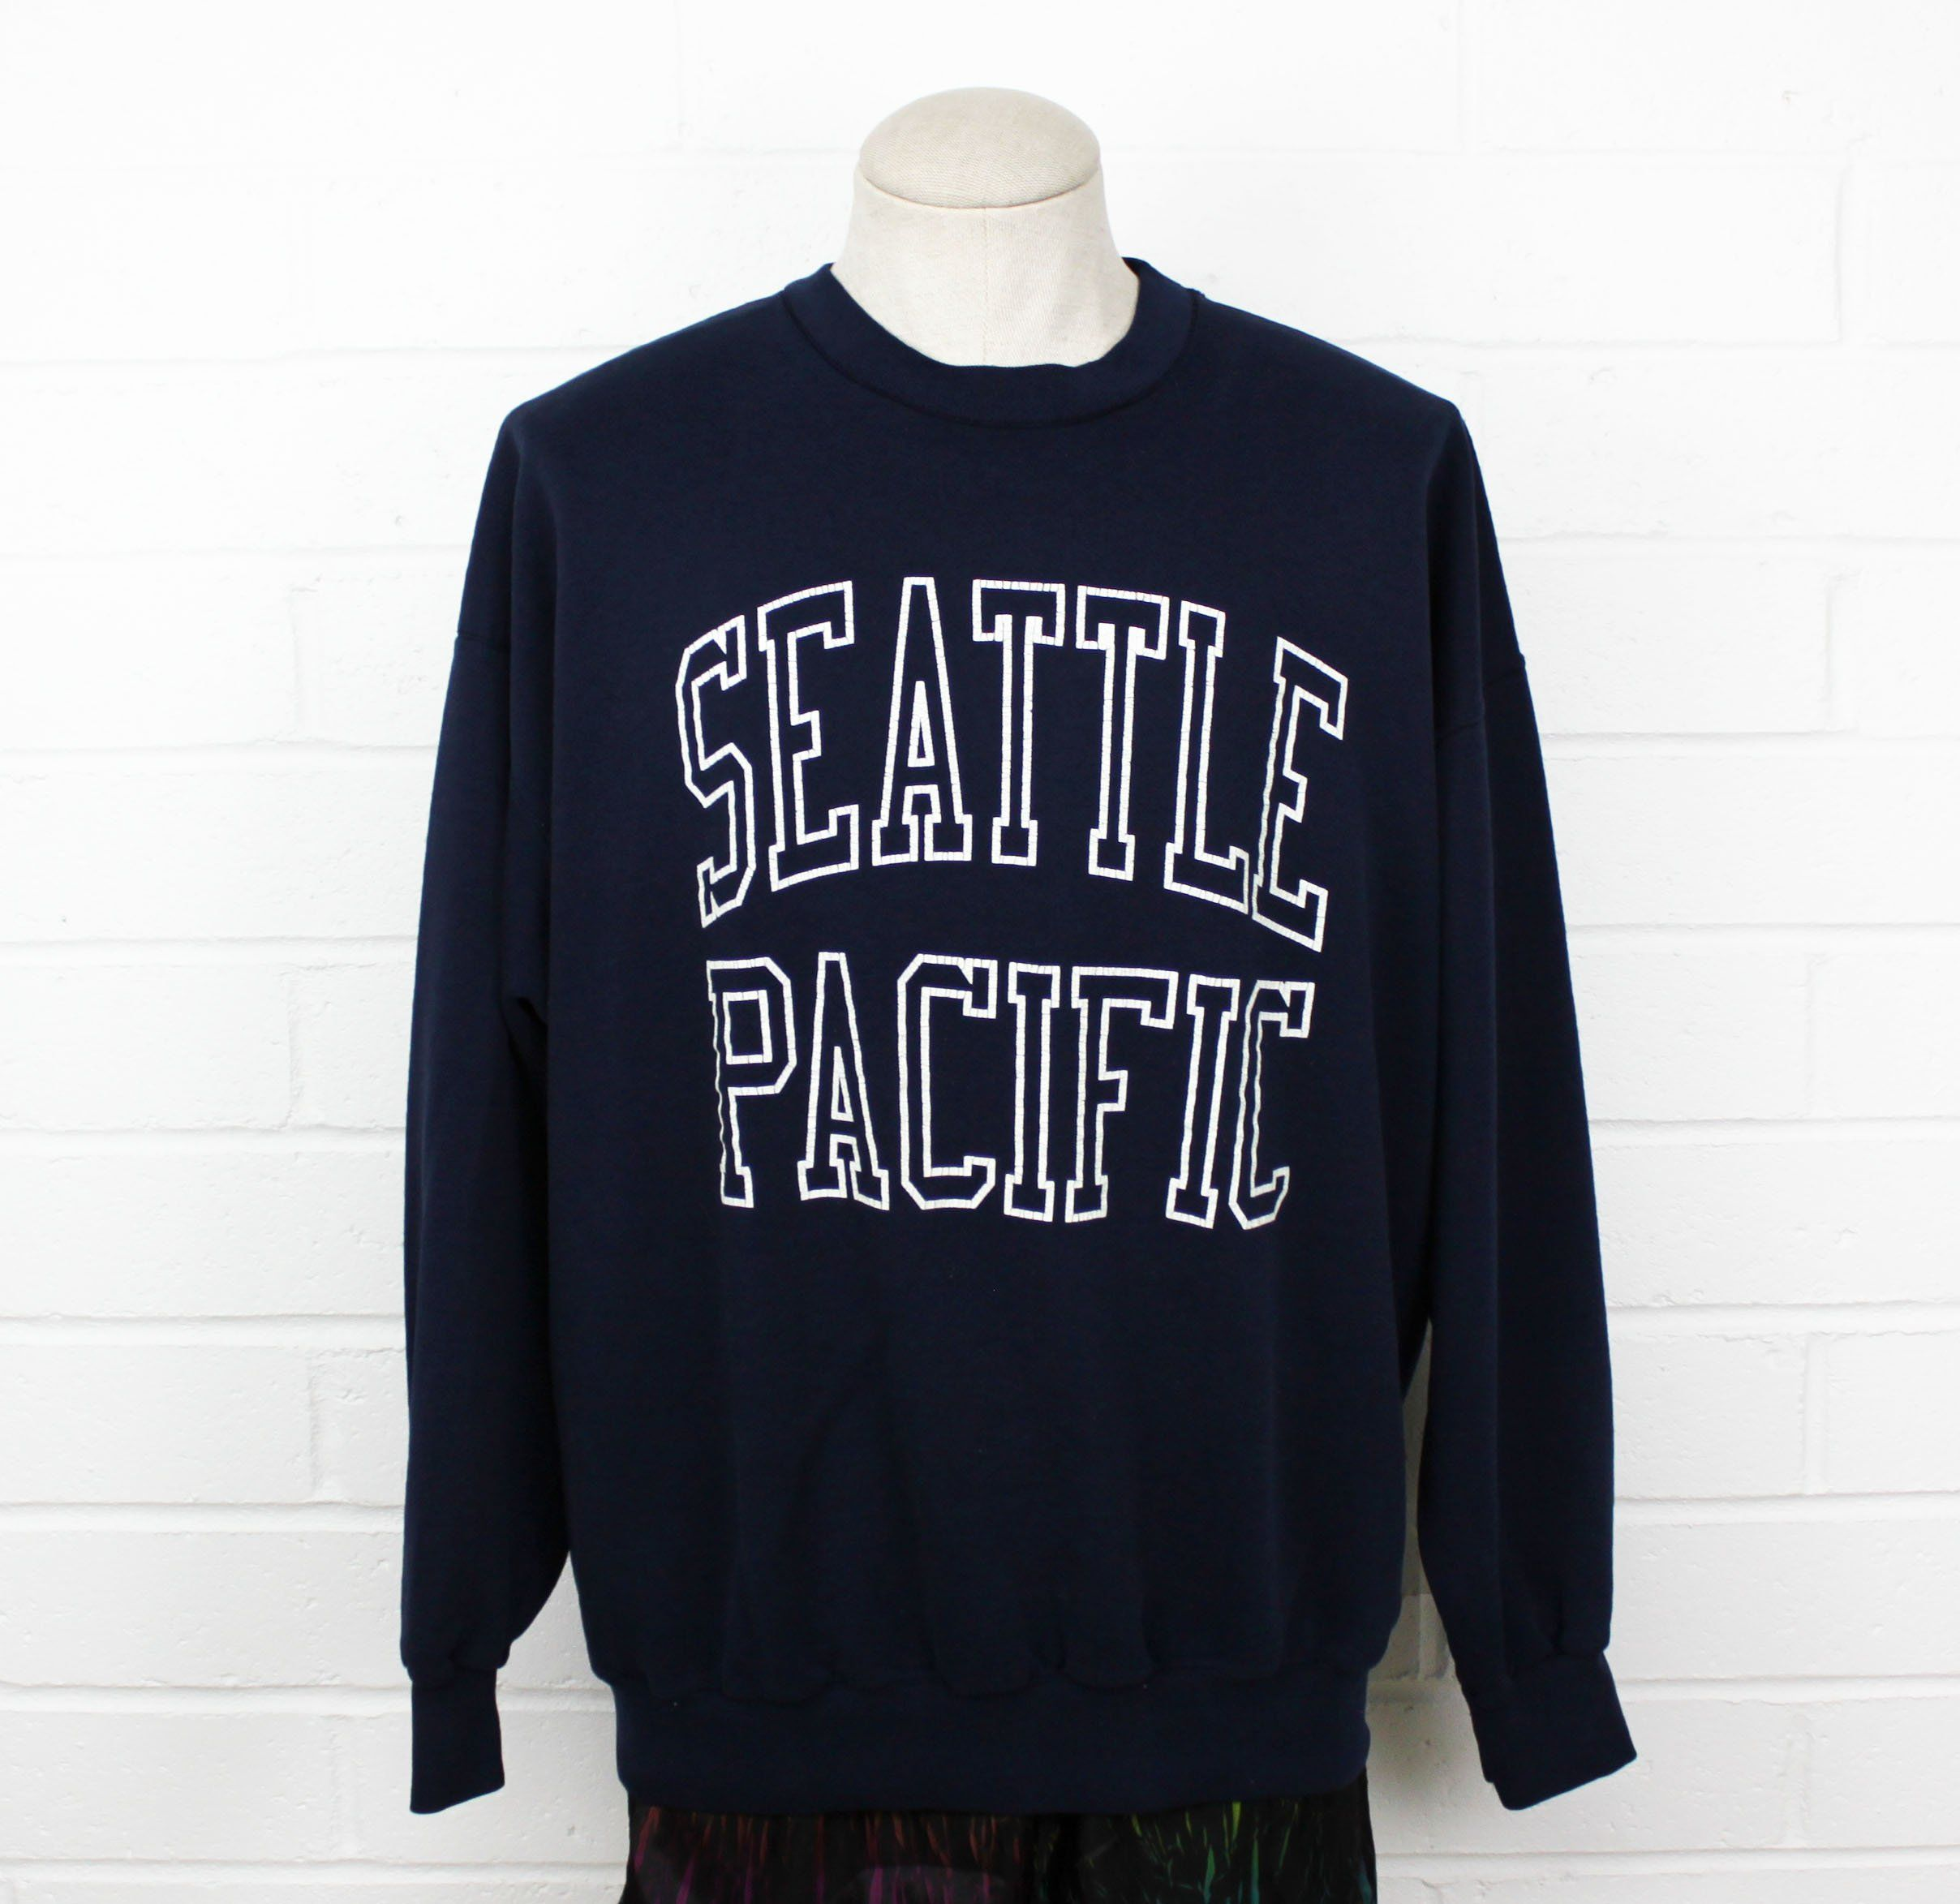 Vintage 80s Seattle Pacific University Sweatshirt Baggy Soft XXL 2XL Navy  Blue College Crew Neck Sweater by Nack4VintageShop on Etsy 12b6b09d8